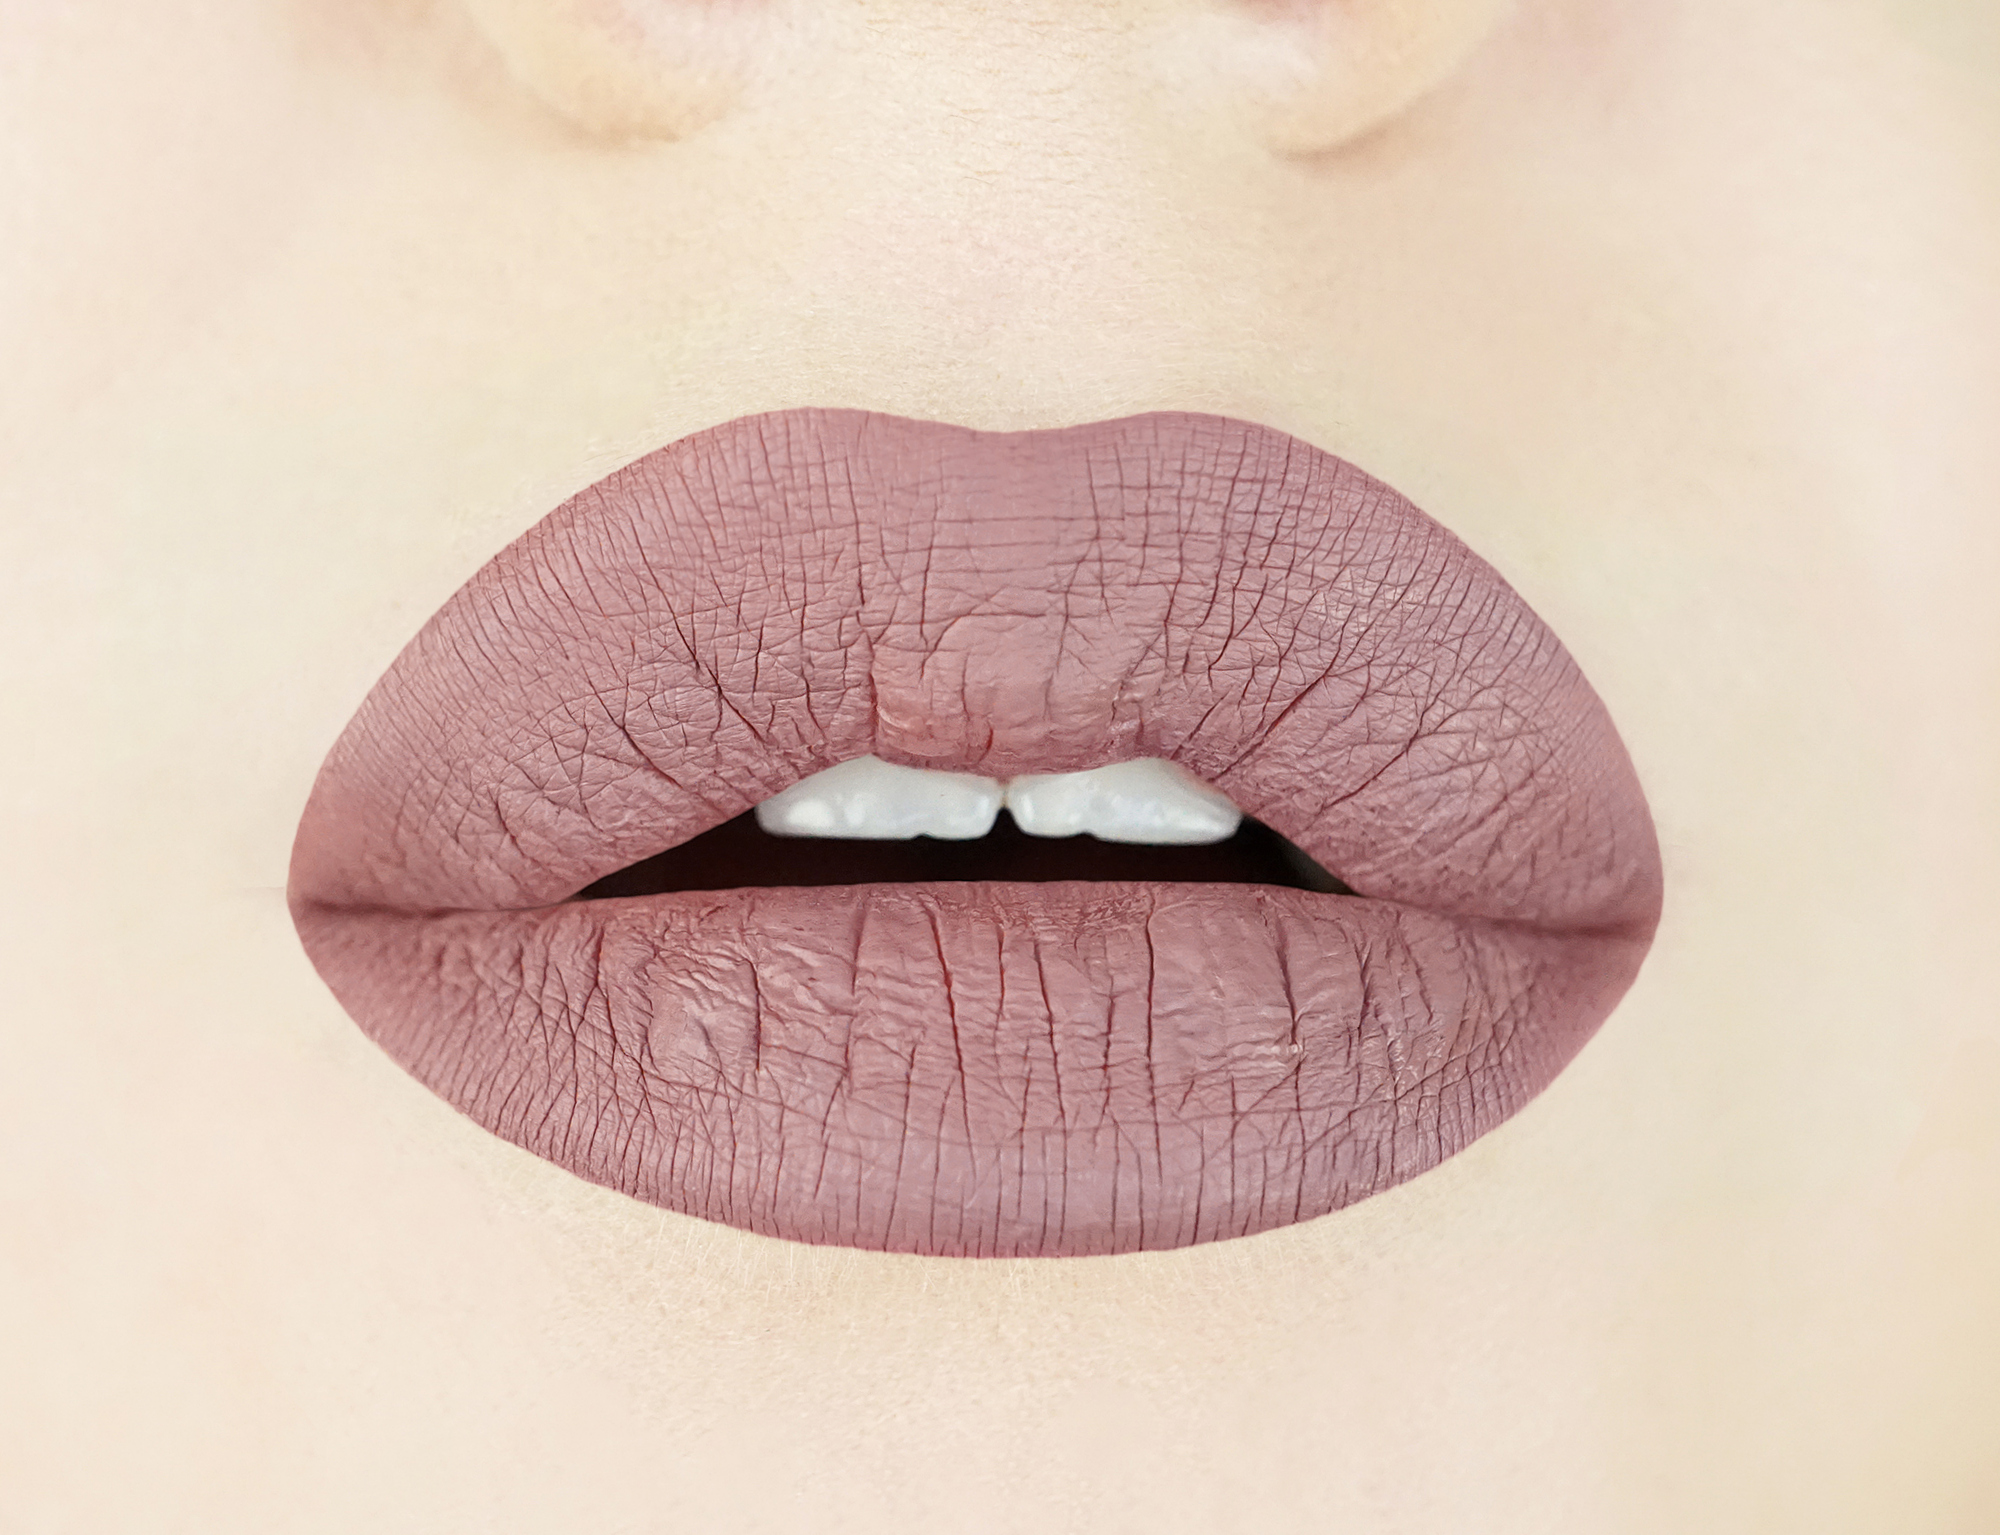 Swatch of Aromi Desert Taupe Liquid Lipstick